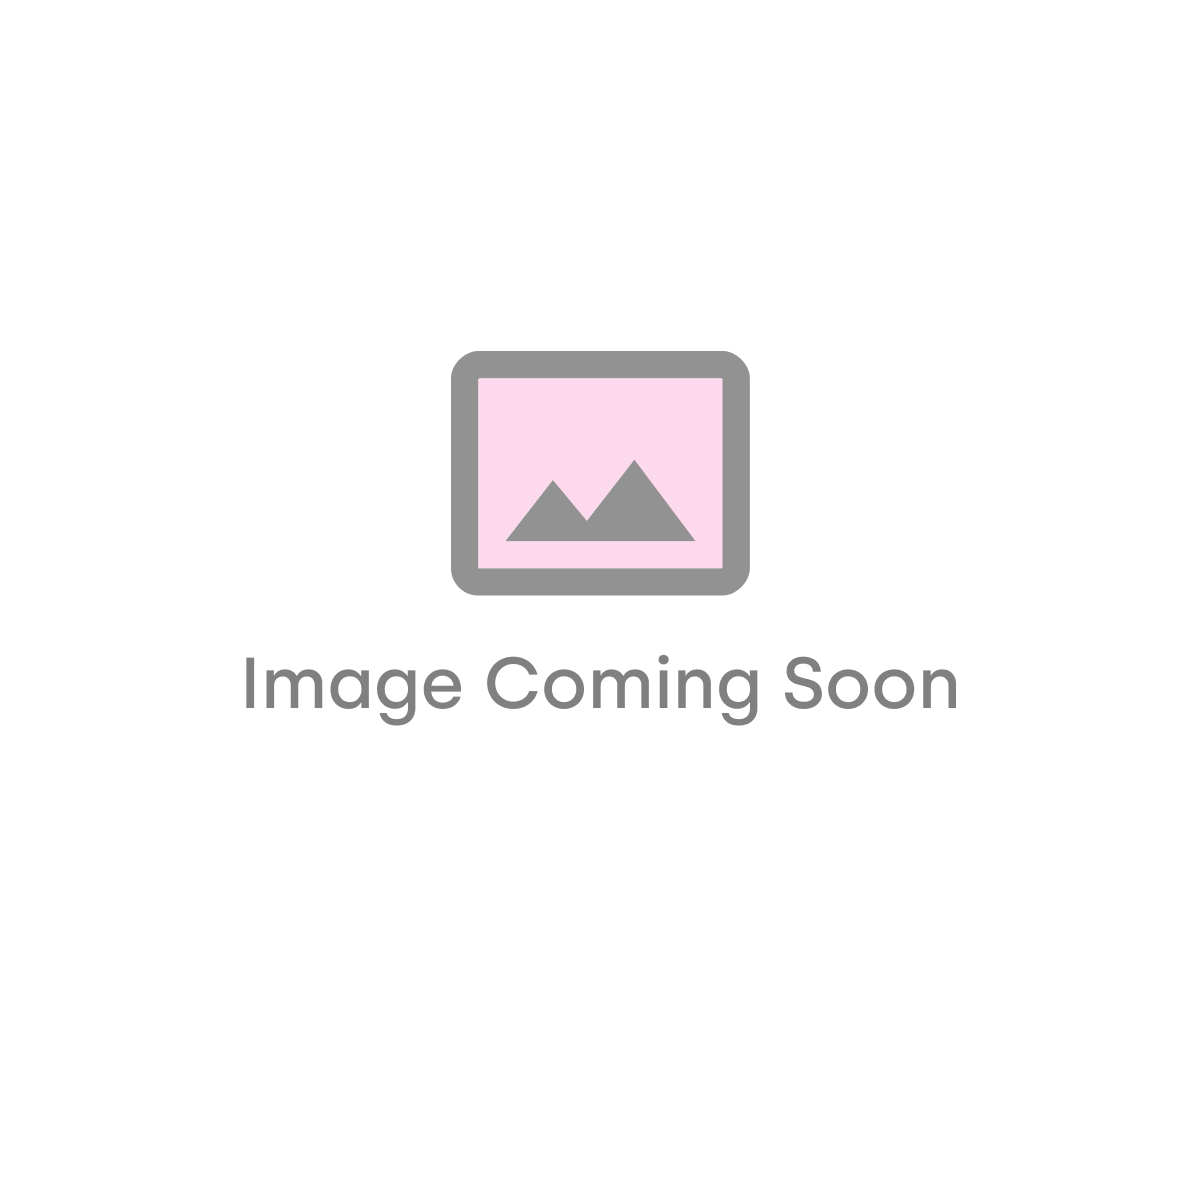 Merlyn Vivid Sublime 900mm Pivot Shower Door (13736)